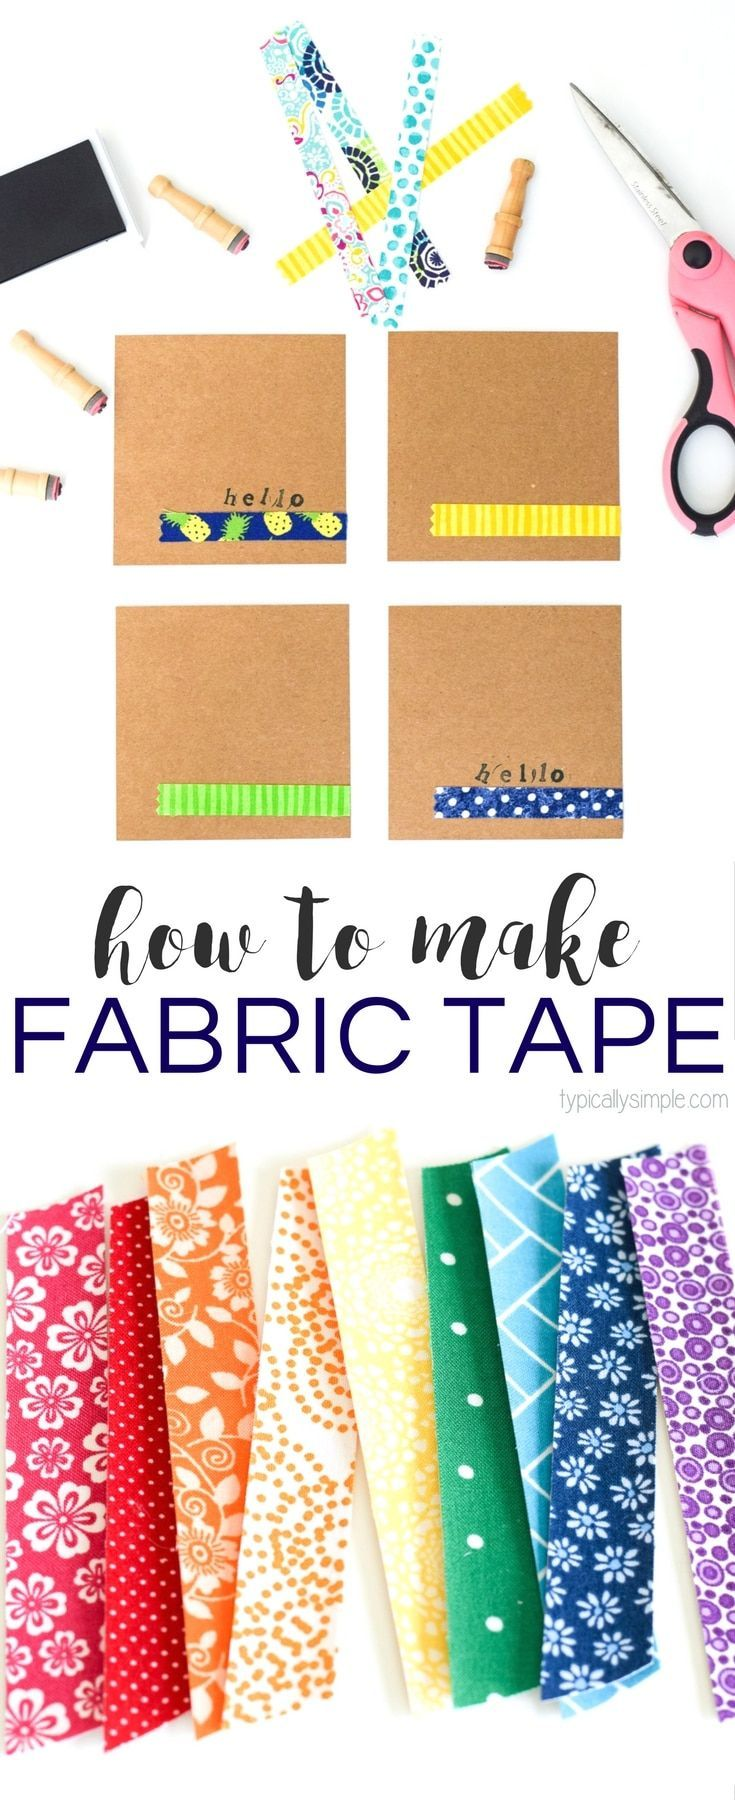 DIY Fabric Tape Tutorial - Typically Simple